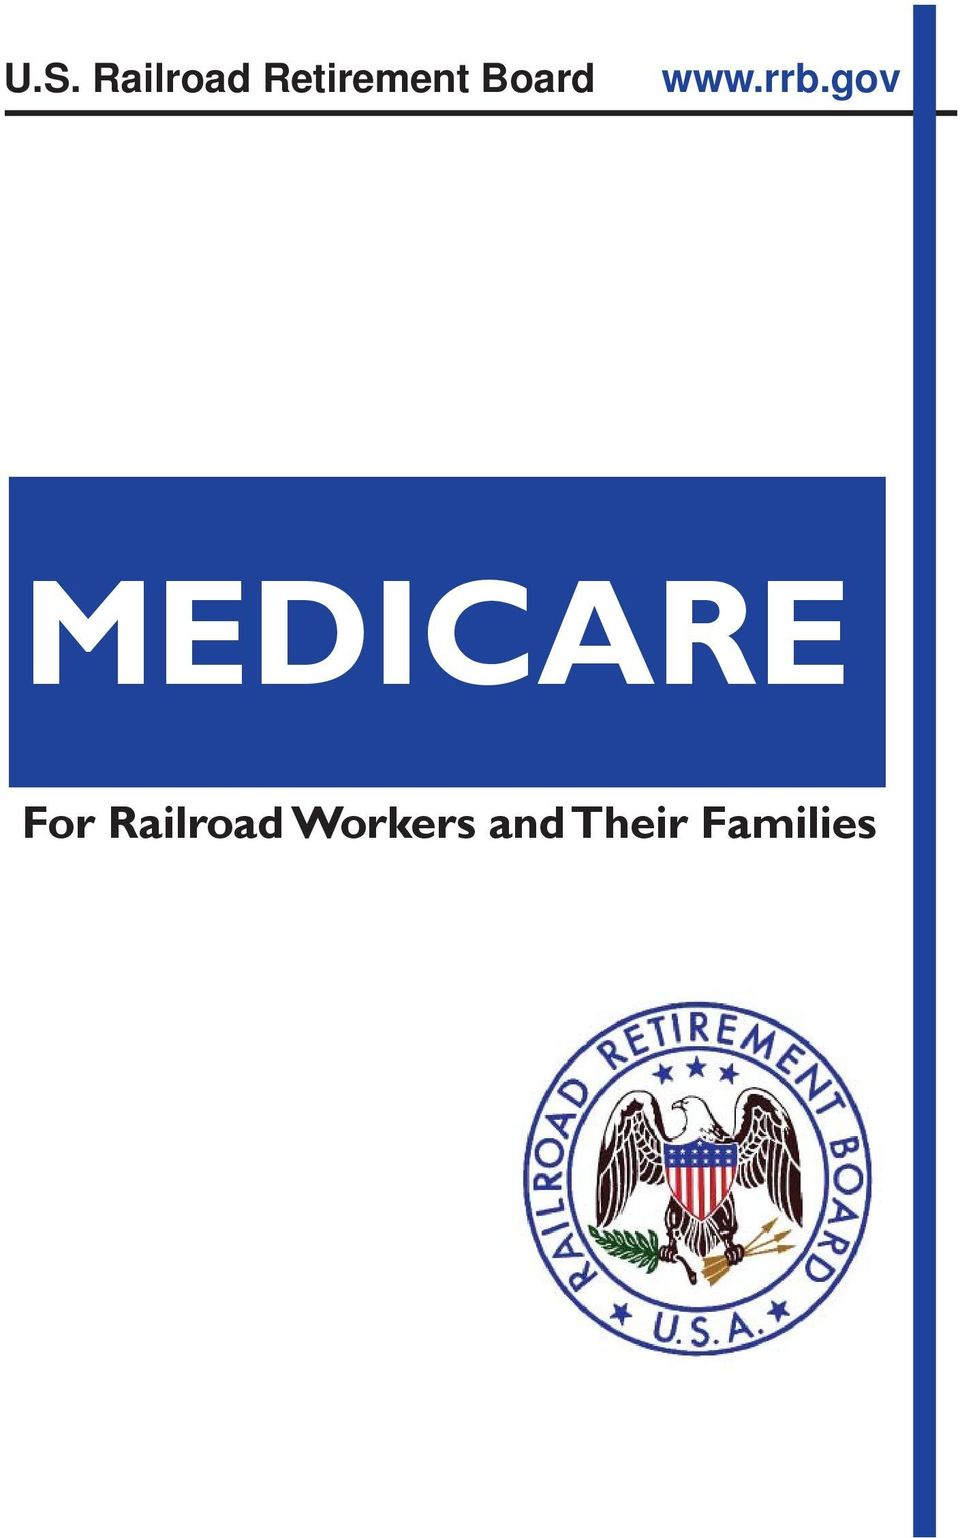 rrb.gov MEDICARE For